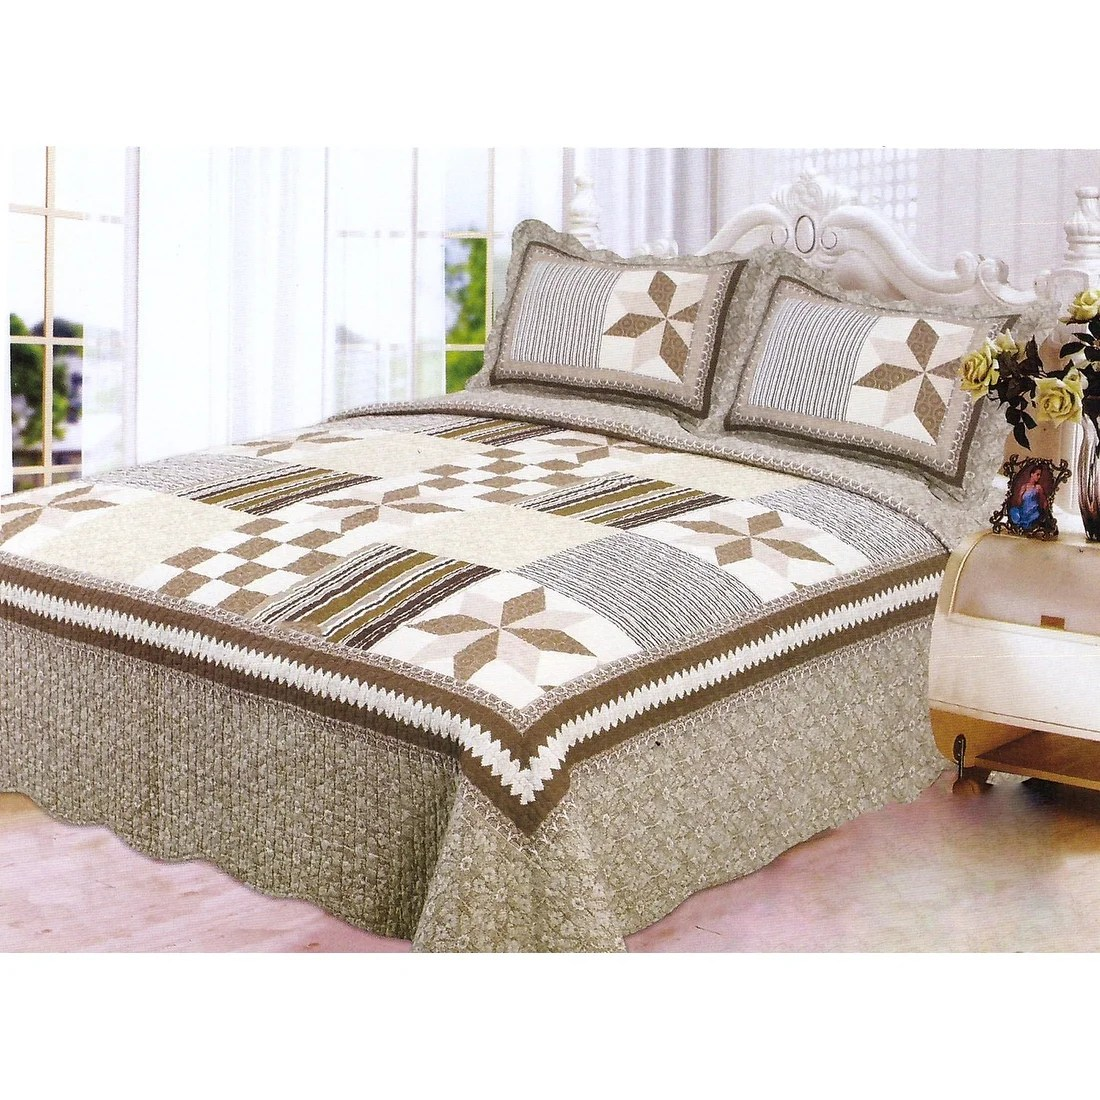 Bed Coverlet 3pcs Quilt Set Brown White Beige Multi Color Modern Design Quilt Bedspread Bed Coverlet